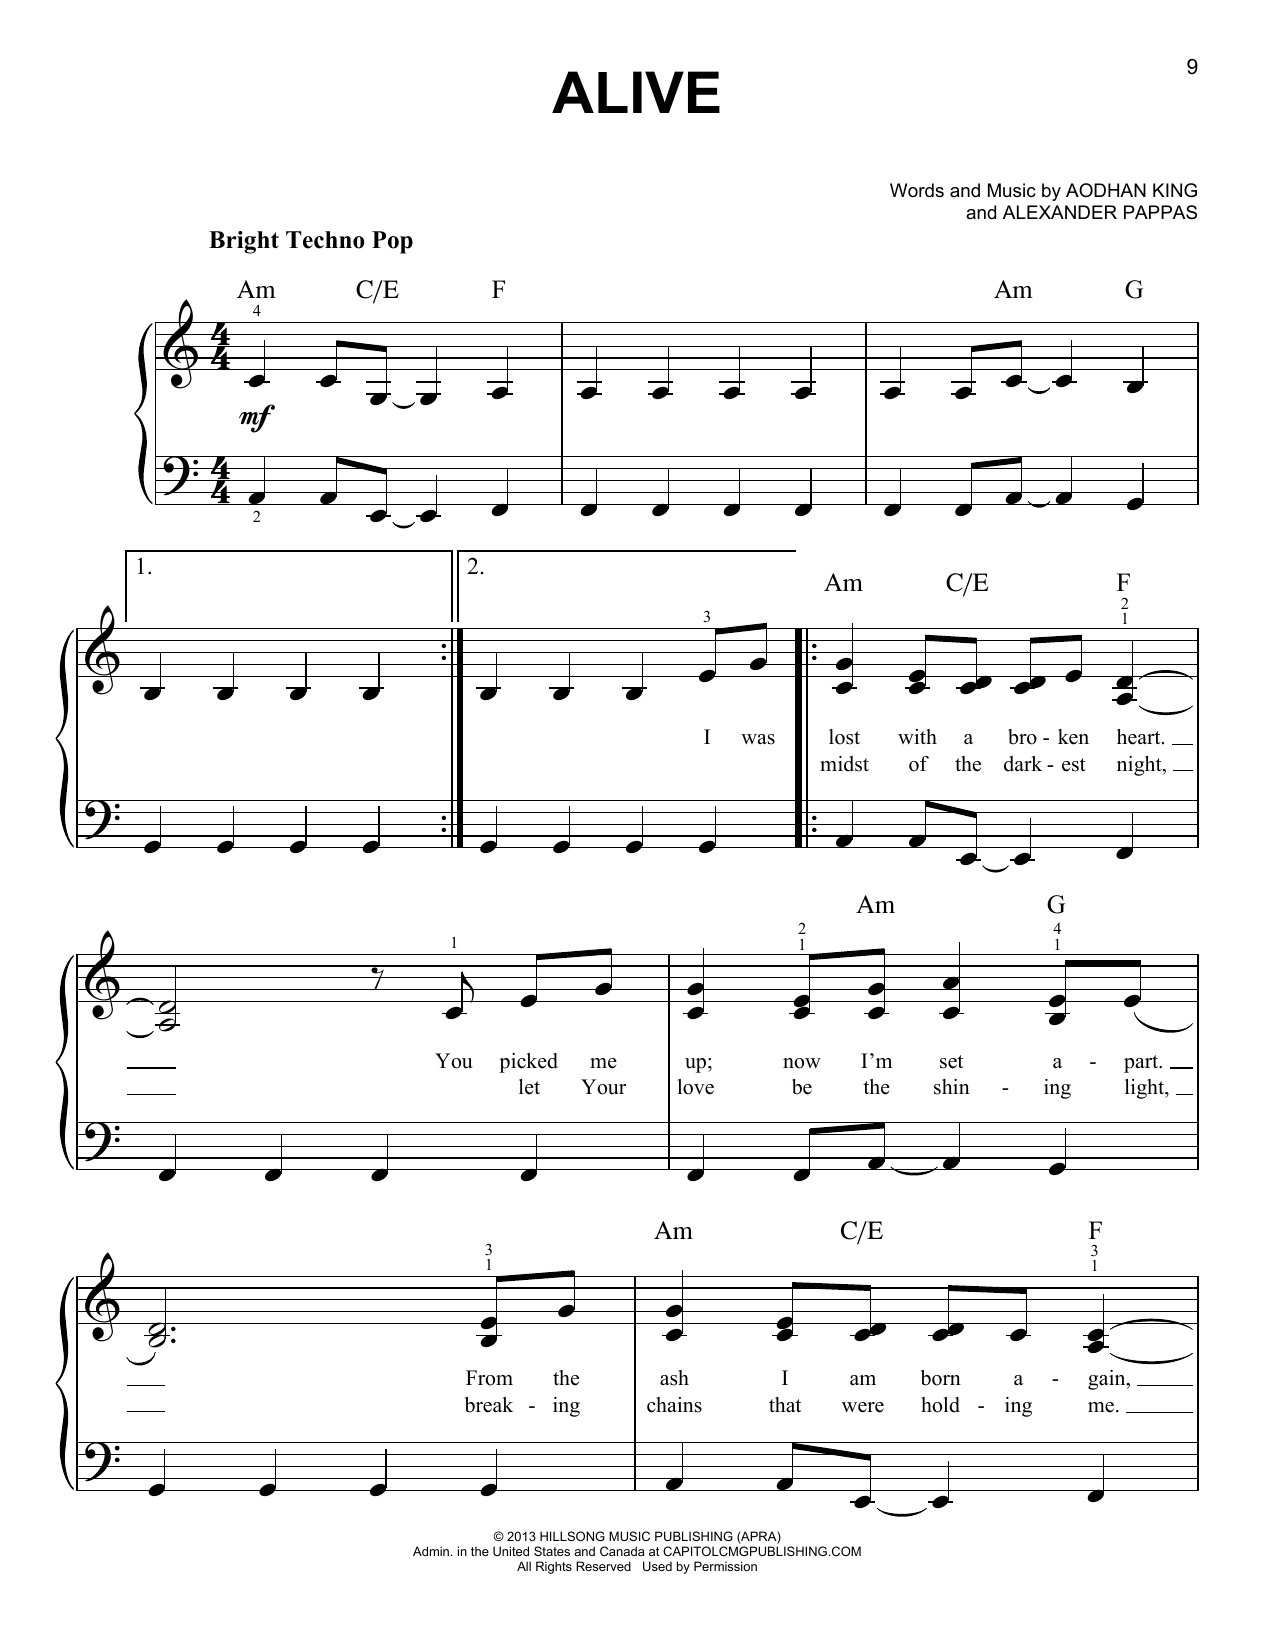 Hillsong Young & Free Alive sheet music notes and chords